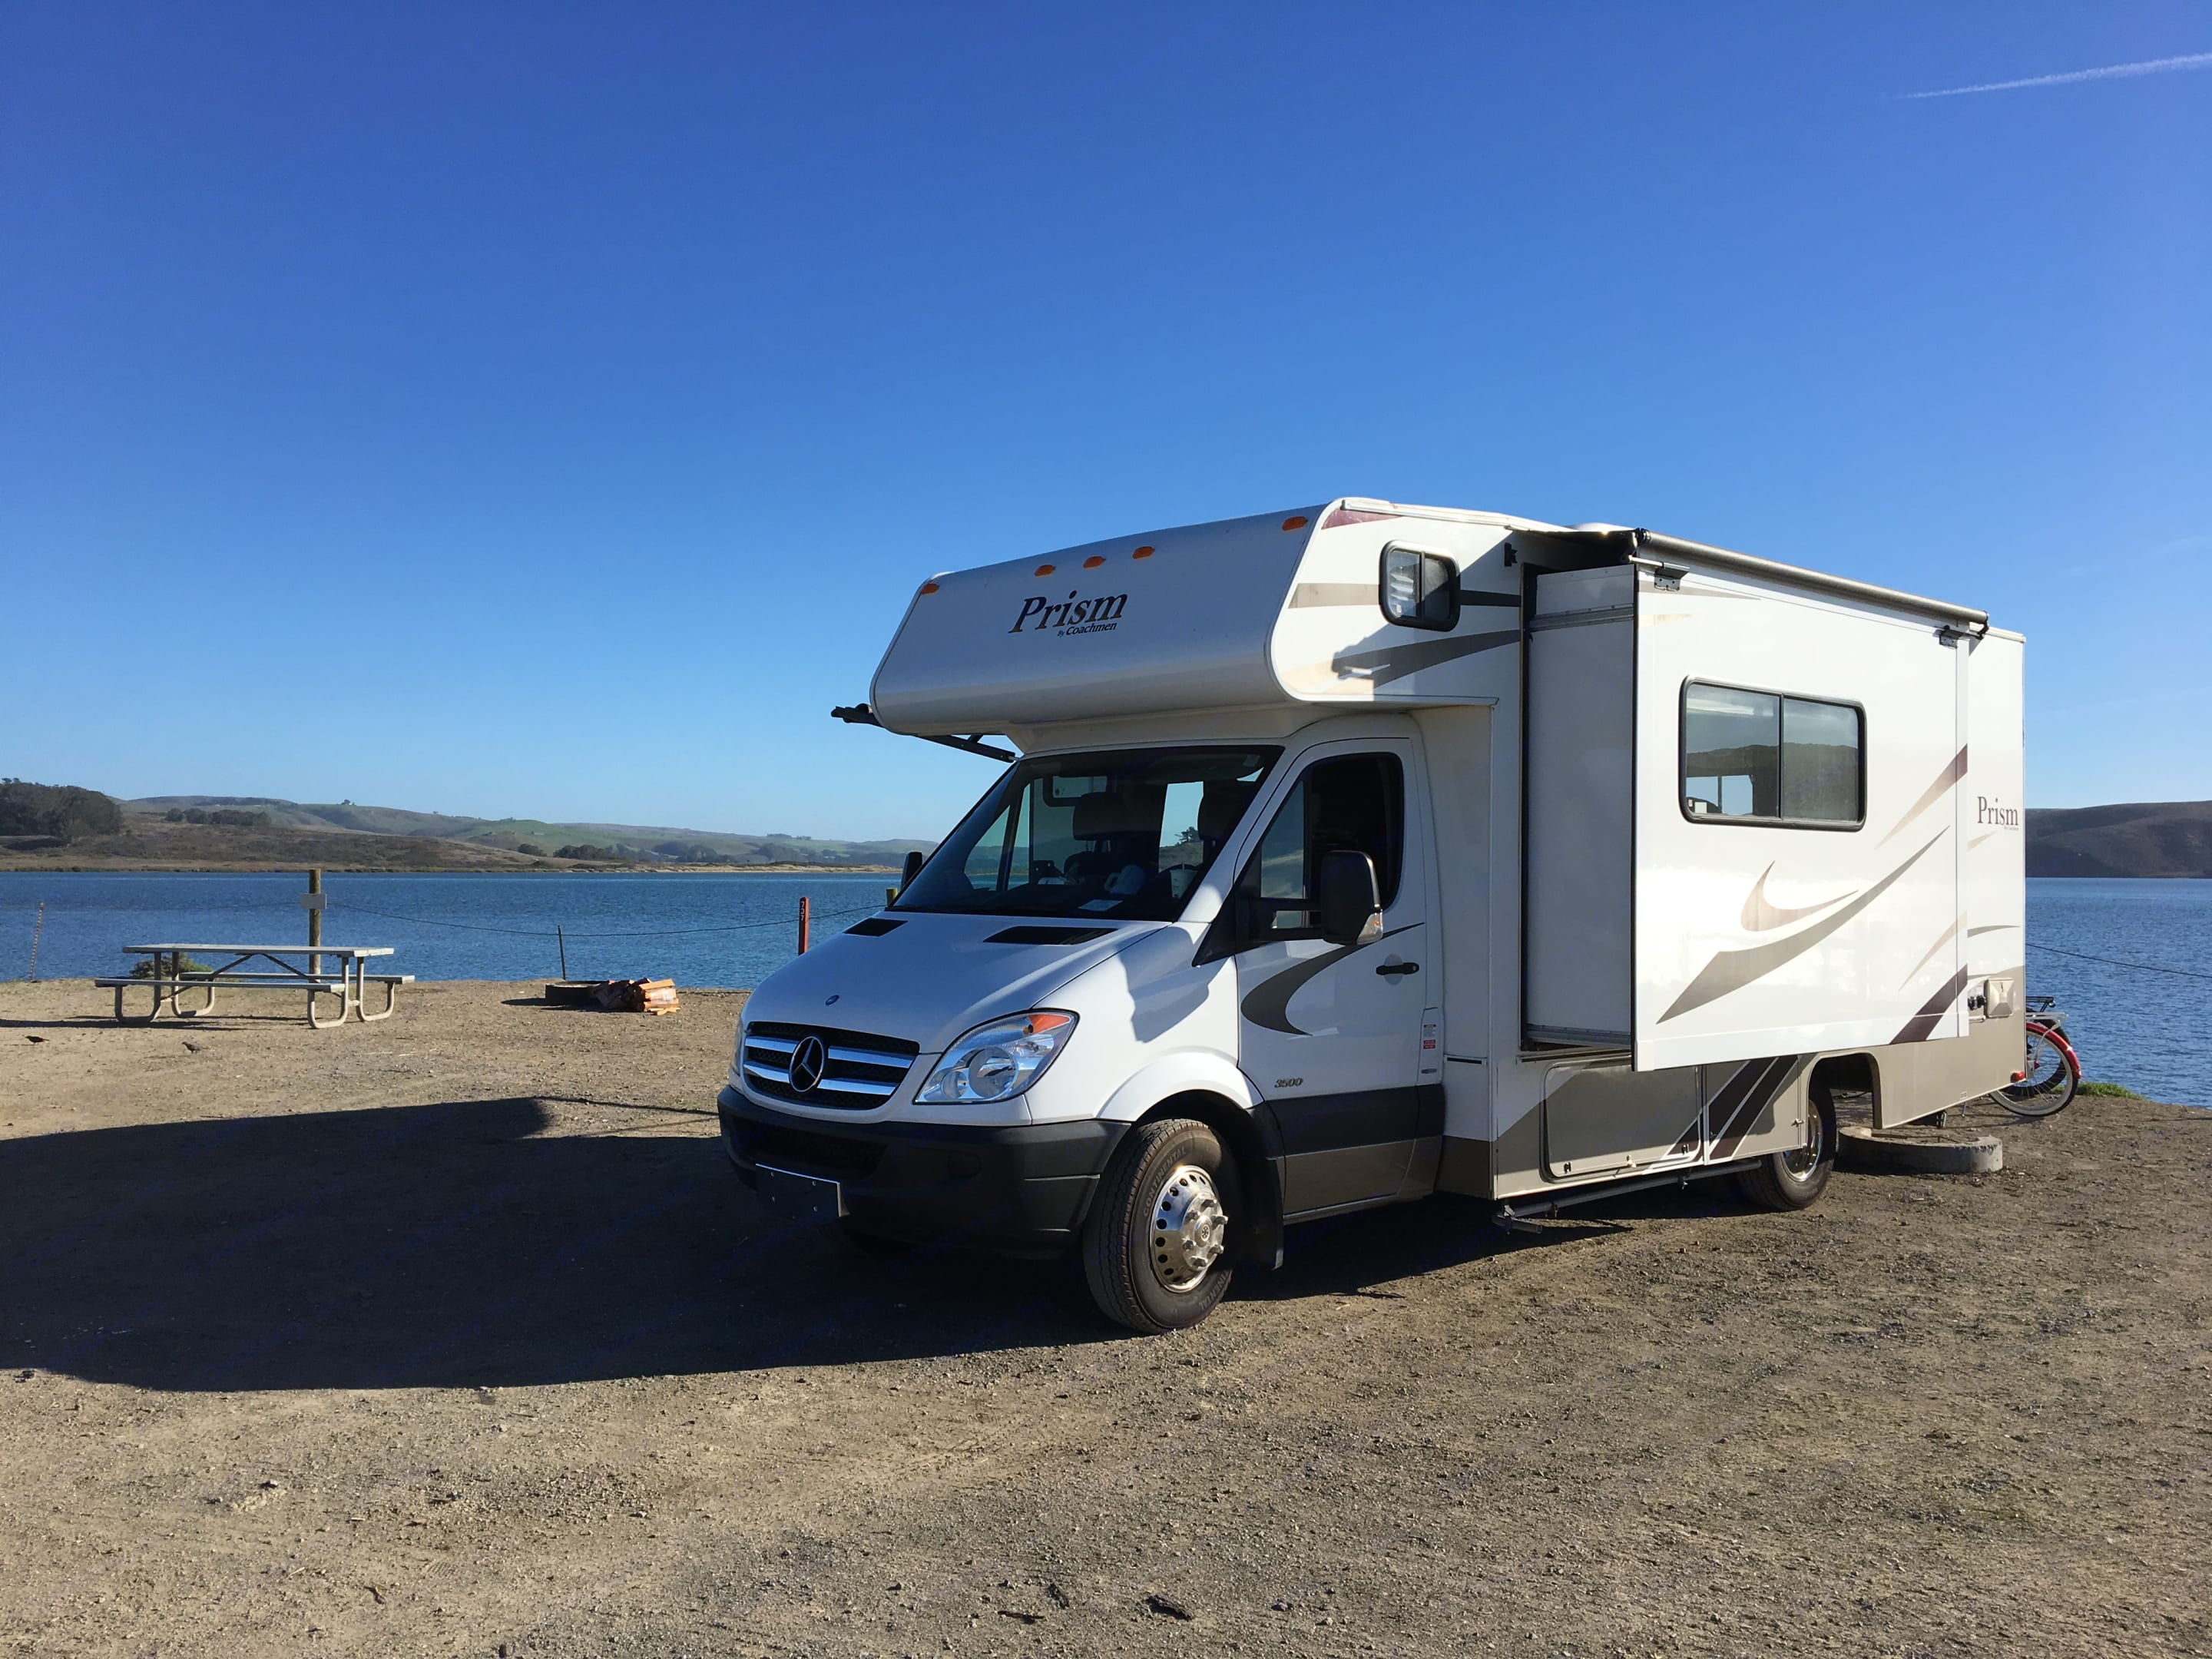 This is our fun family RV! We invite you to enjoy it as we do on our vacations! The floorplan is amazing, sleeps 4-5, and has every amenity you can ask for! . Coachmen Prism 2014